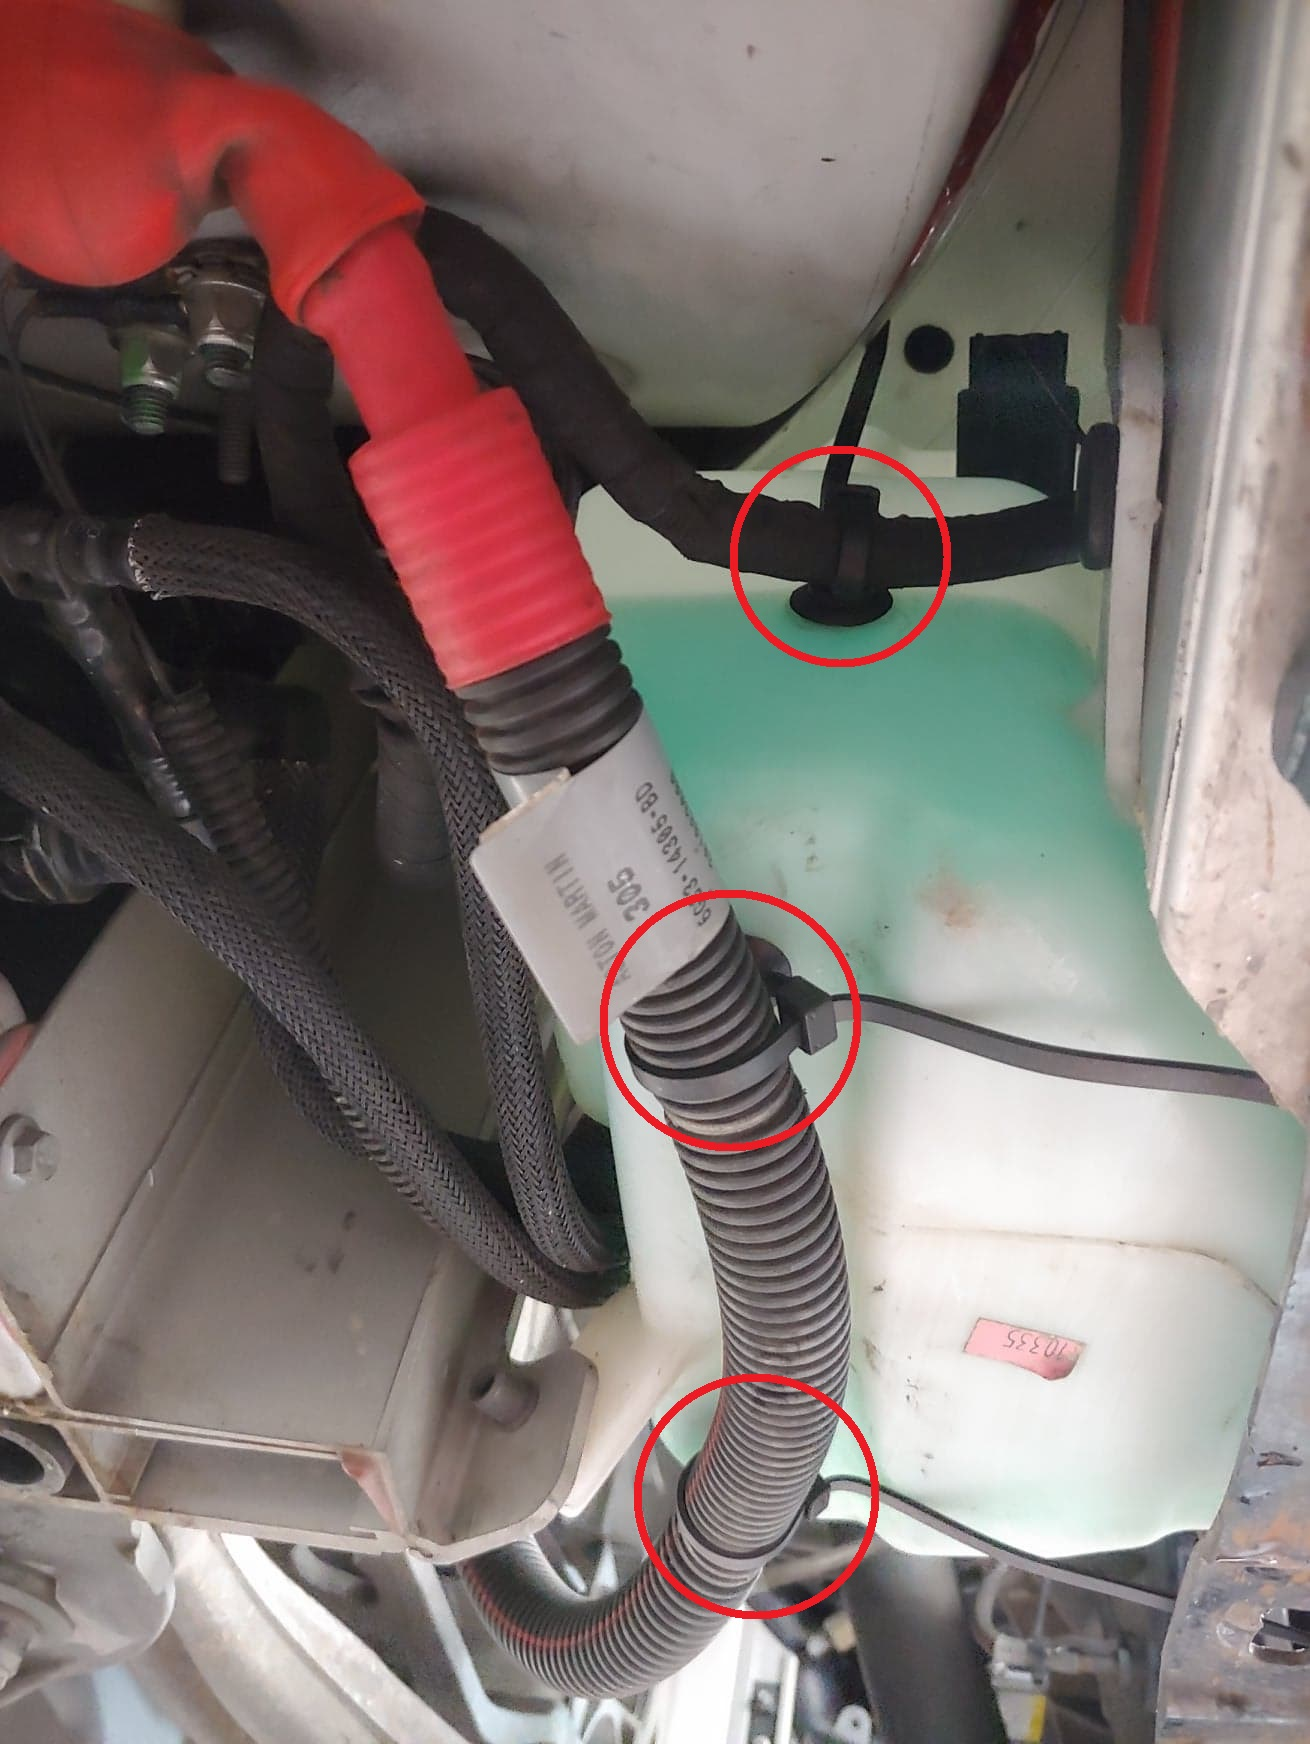 Washer tank starter cable zip ties.jpg